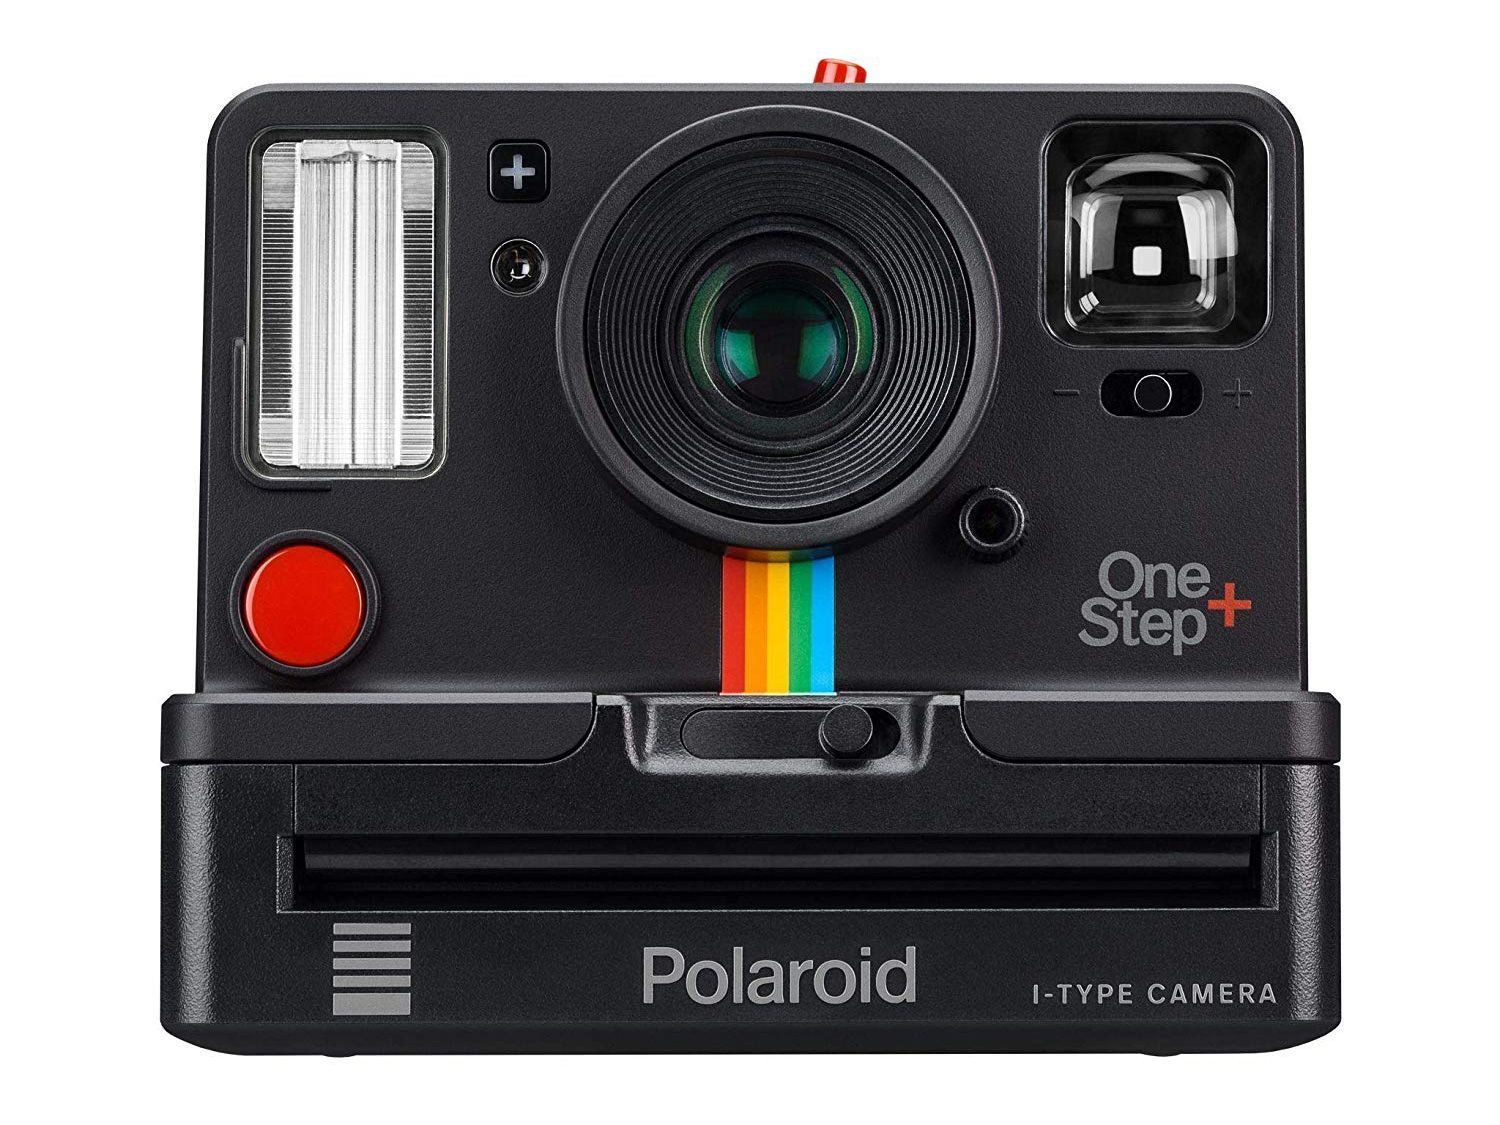 Best Polaroid Camera 2020.The Best Instant Cameras Popular Photography